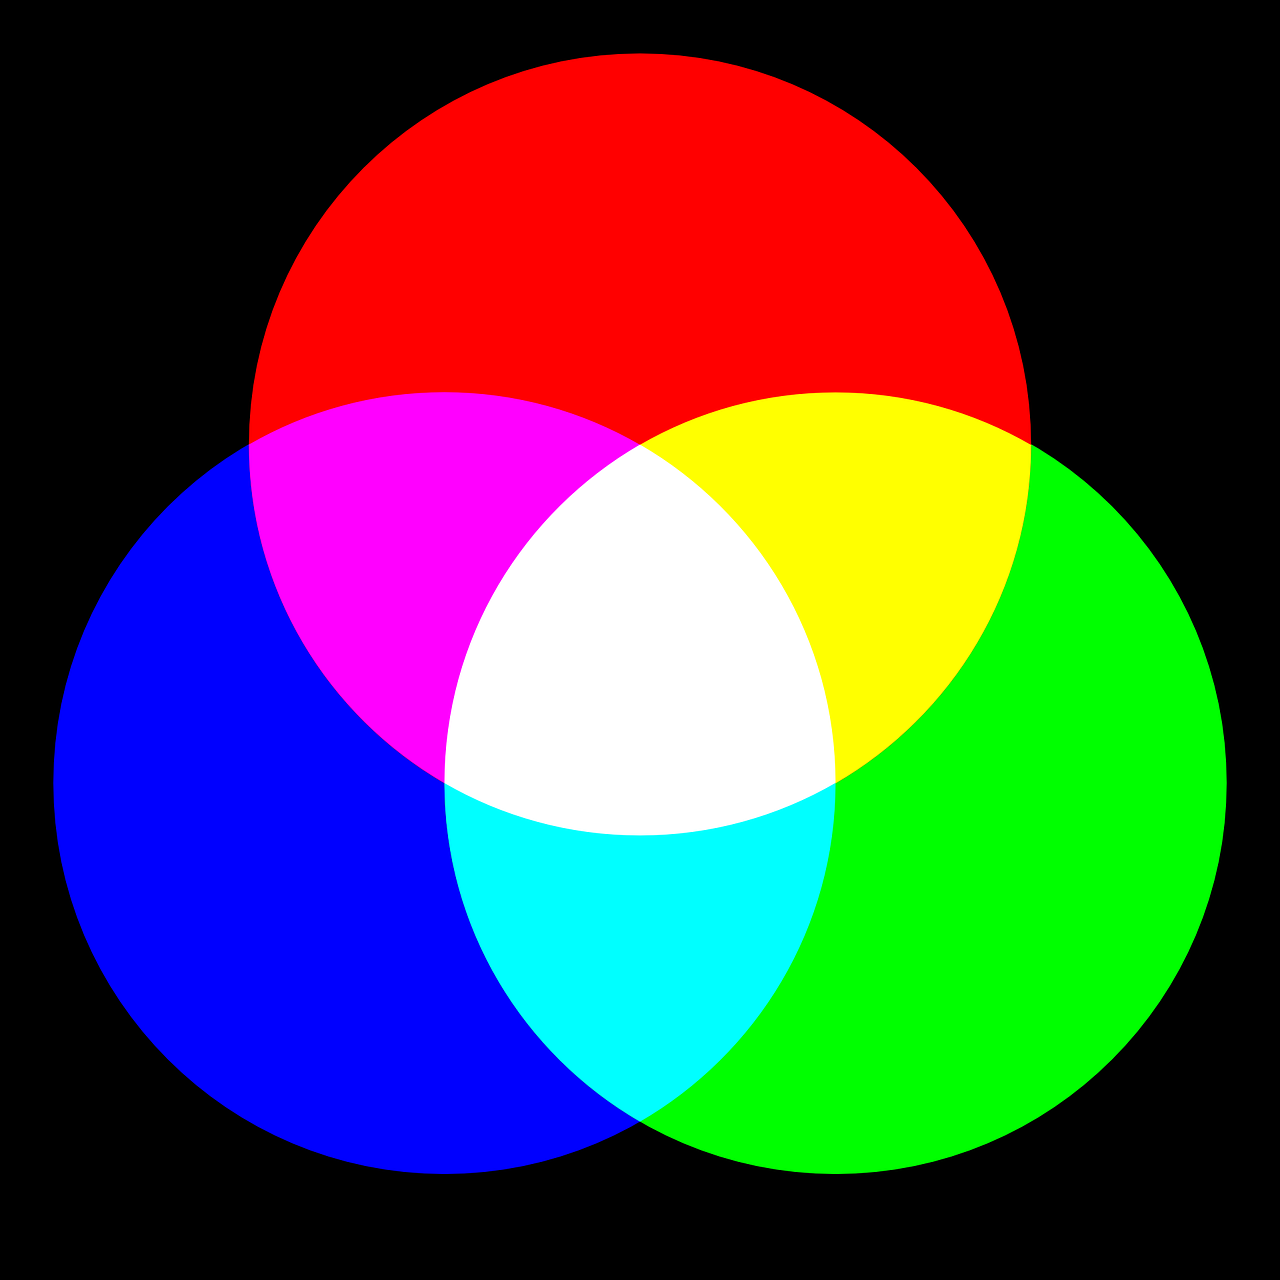 RGB color circles